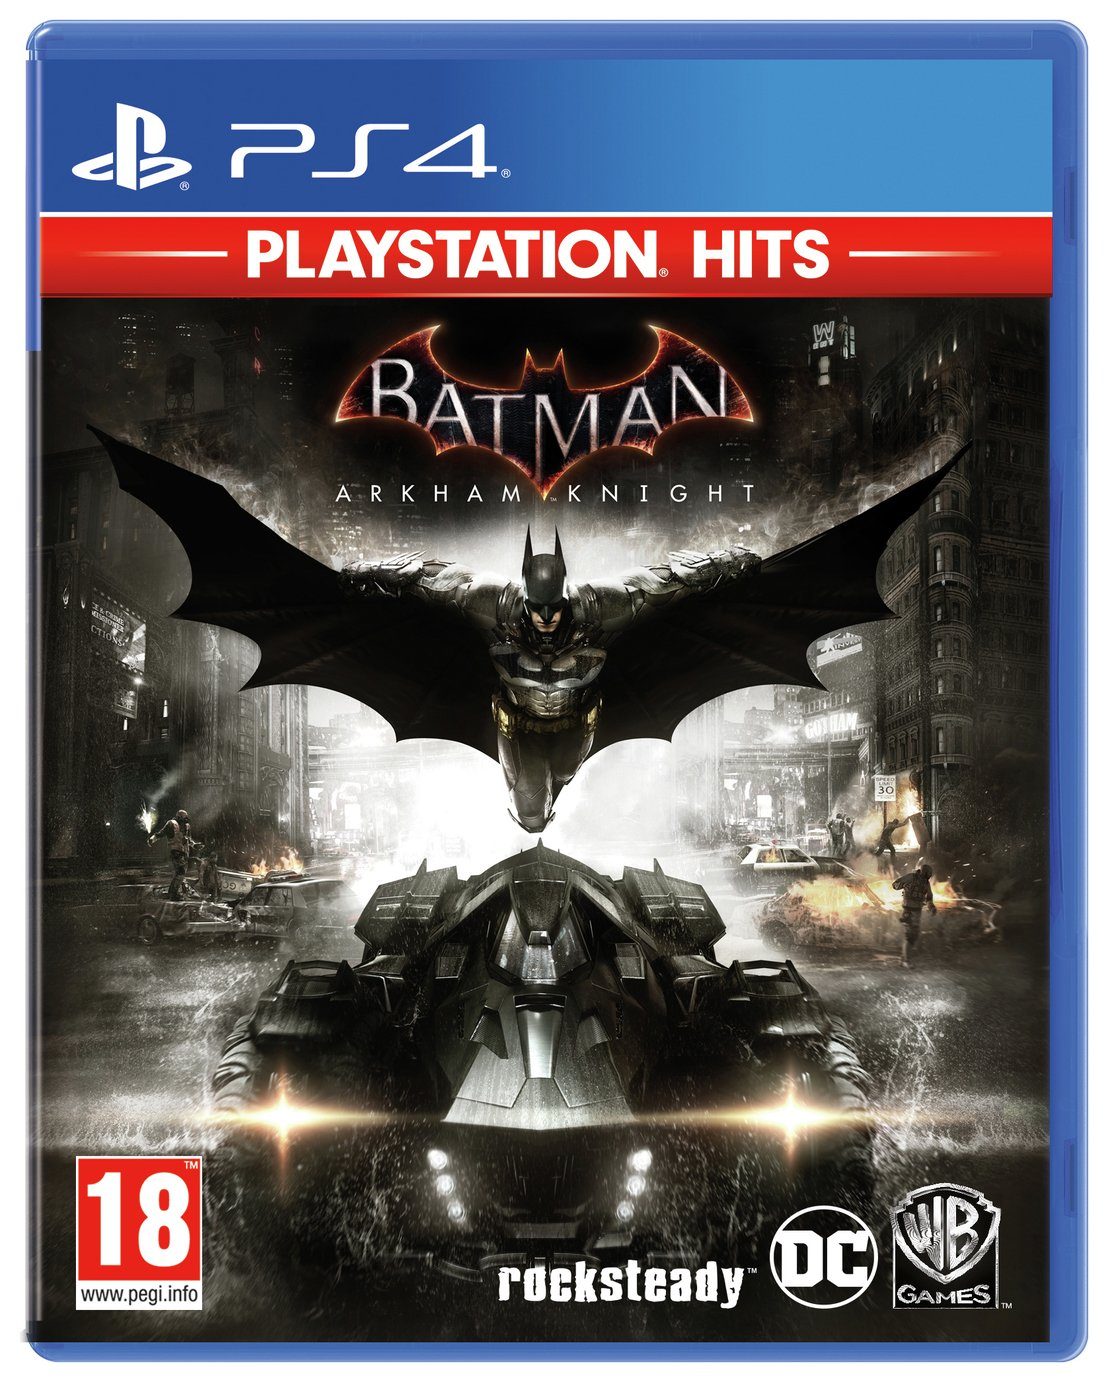 Batman Arkham Knight PS4 Hits Game review